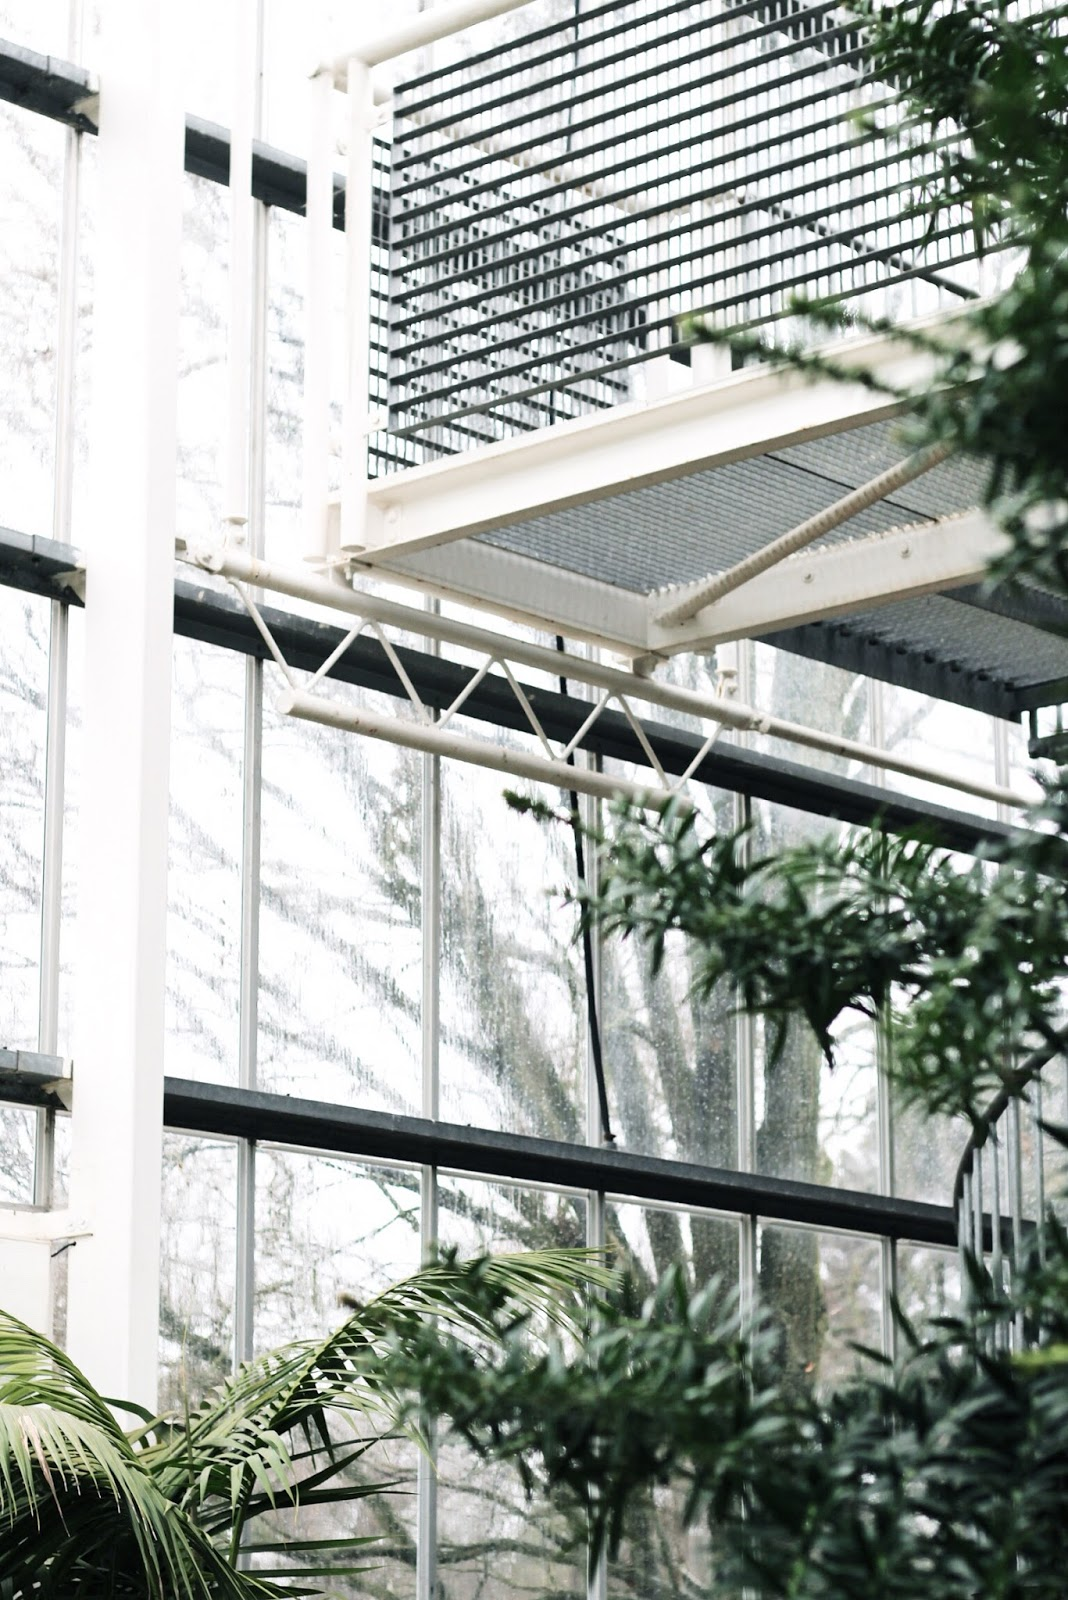 Glasshouse similar to Sky Garden near London